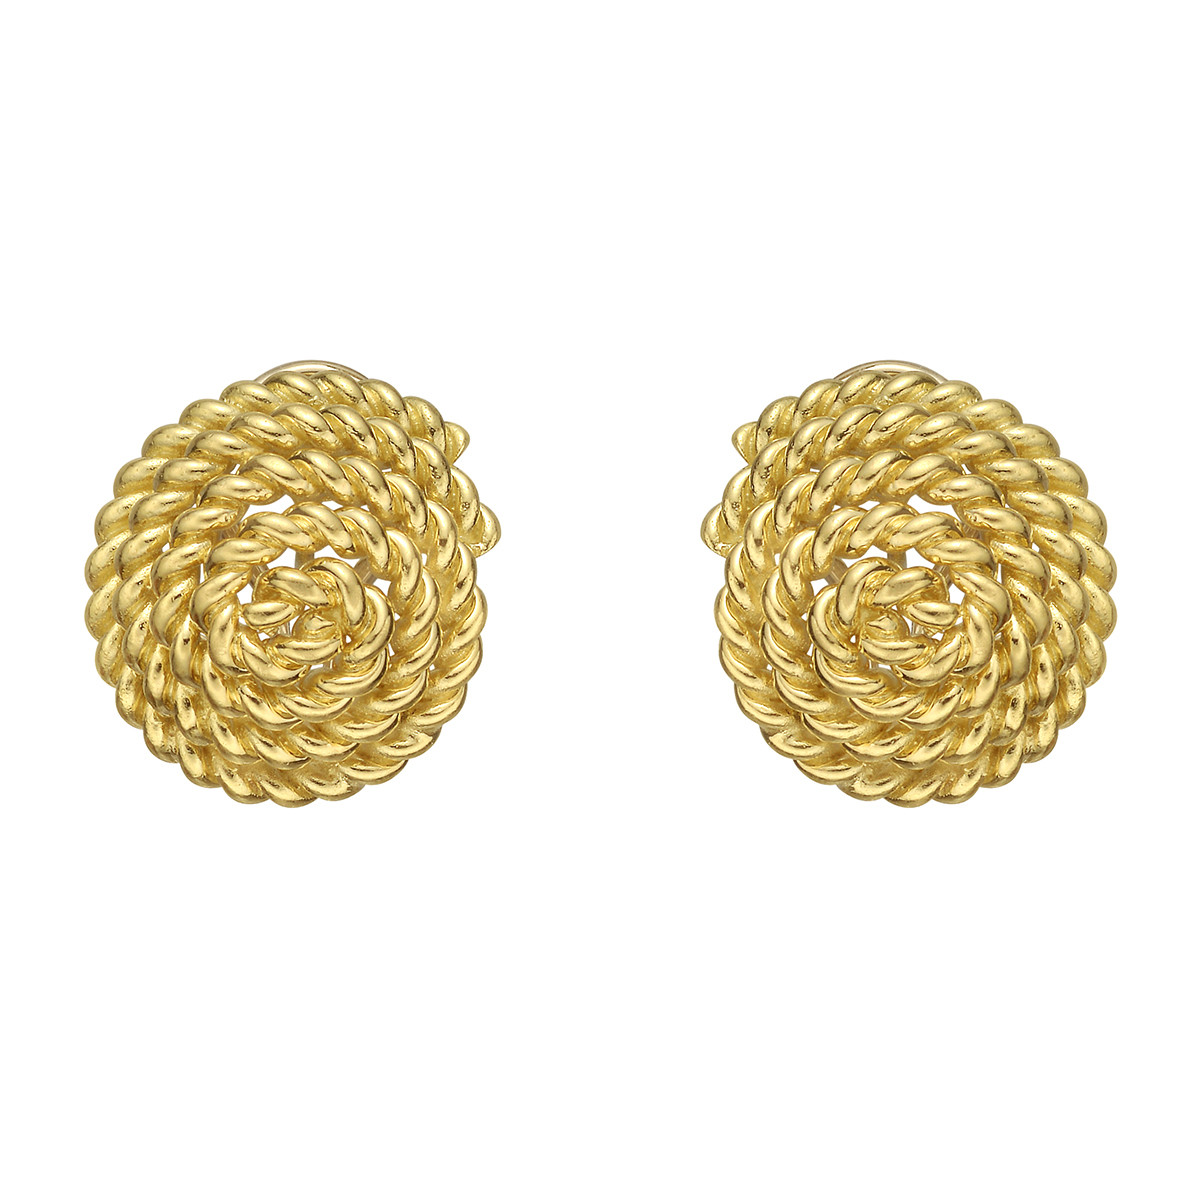 18k Yellow Gold Twistwire Spiral Earrings